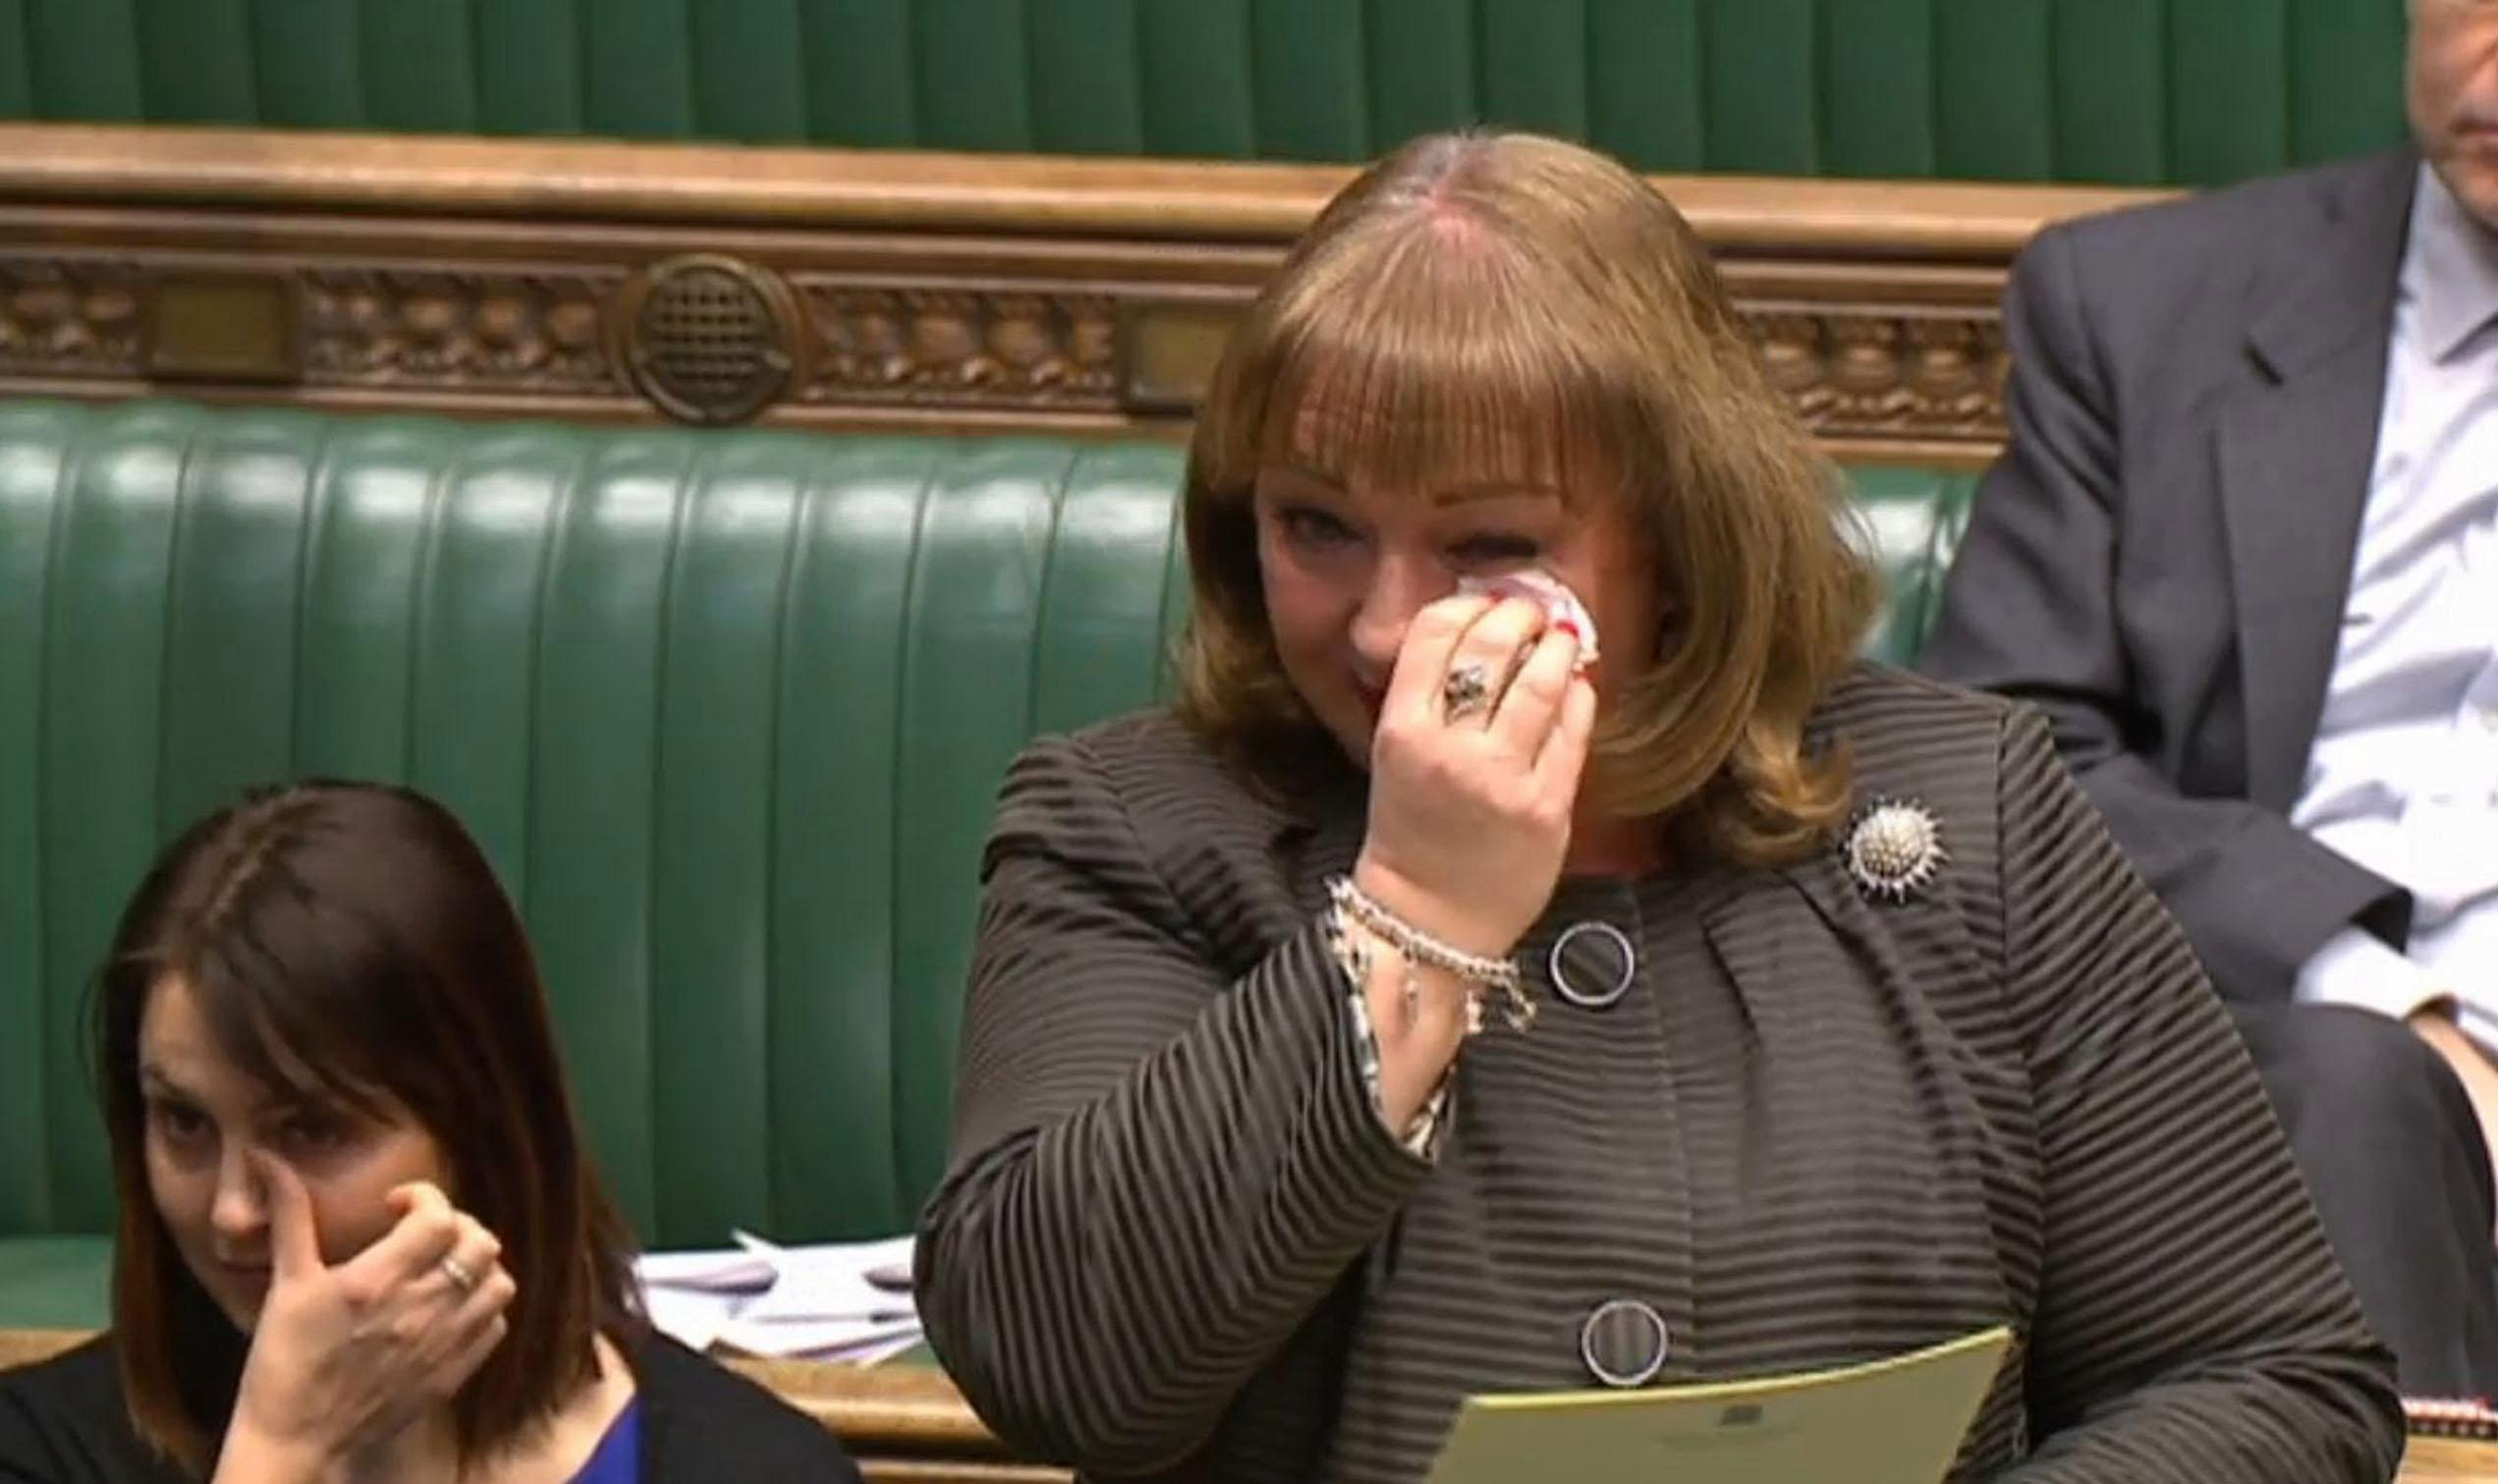 Labour MP Sharon Hodgson brings the House of Commons to tears as she breaks down during emotional speech about her stillborn child